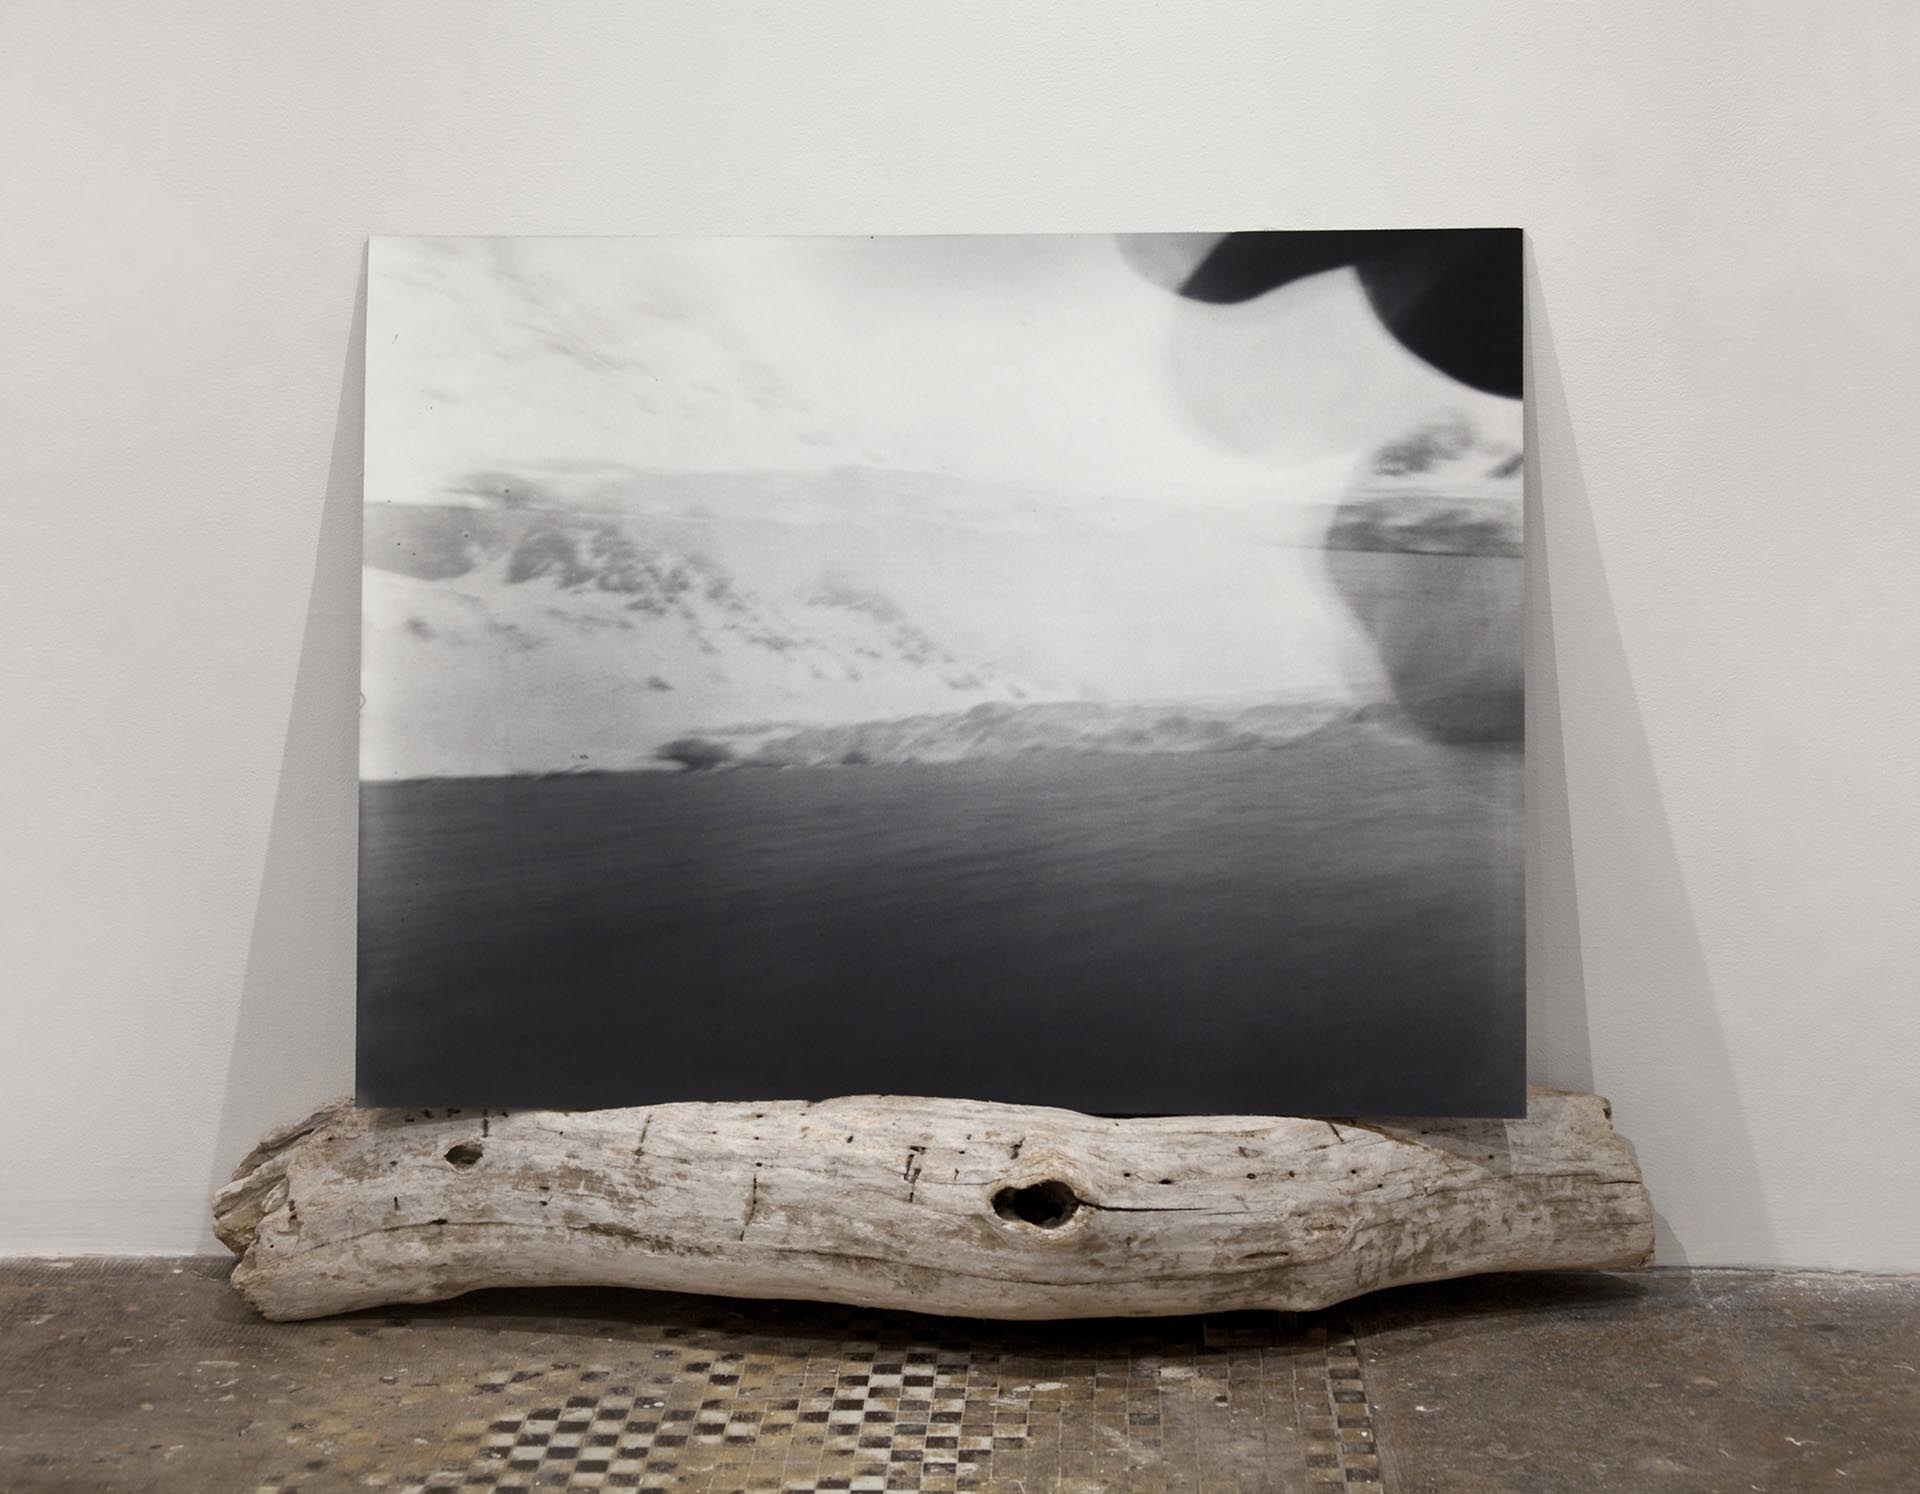 Vanessa Albury, Arctic, Future Relics (Double Mountain & Glacier), 2016, Selenium-toned Gelatin Silver Print mounted to museum board and wood, 38